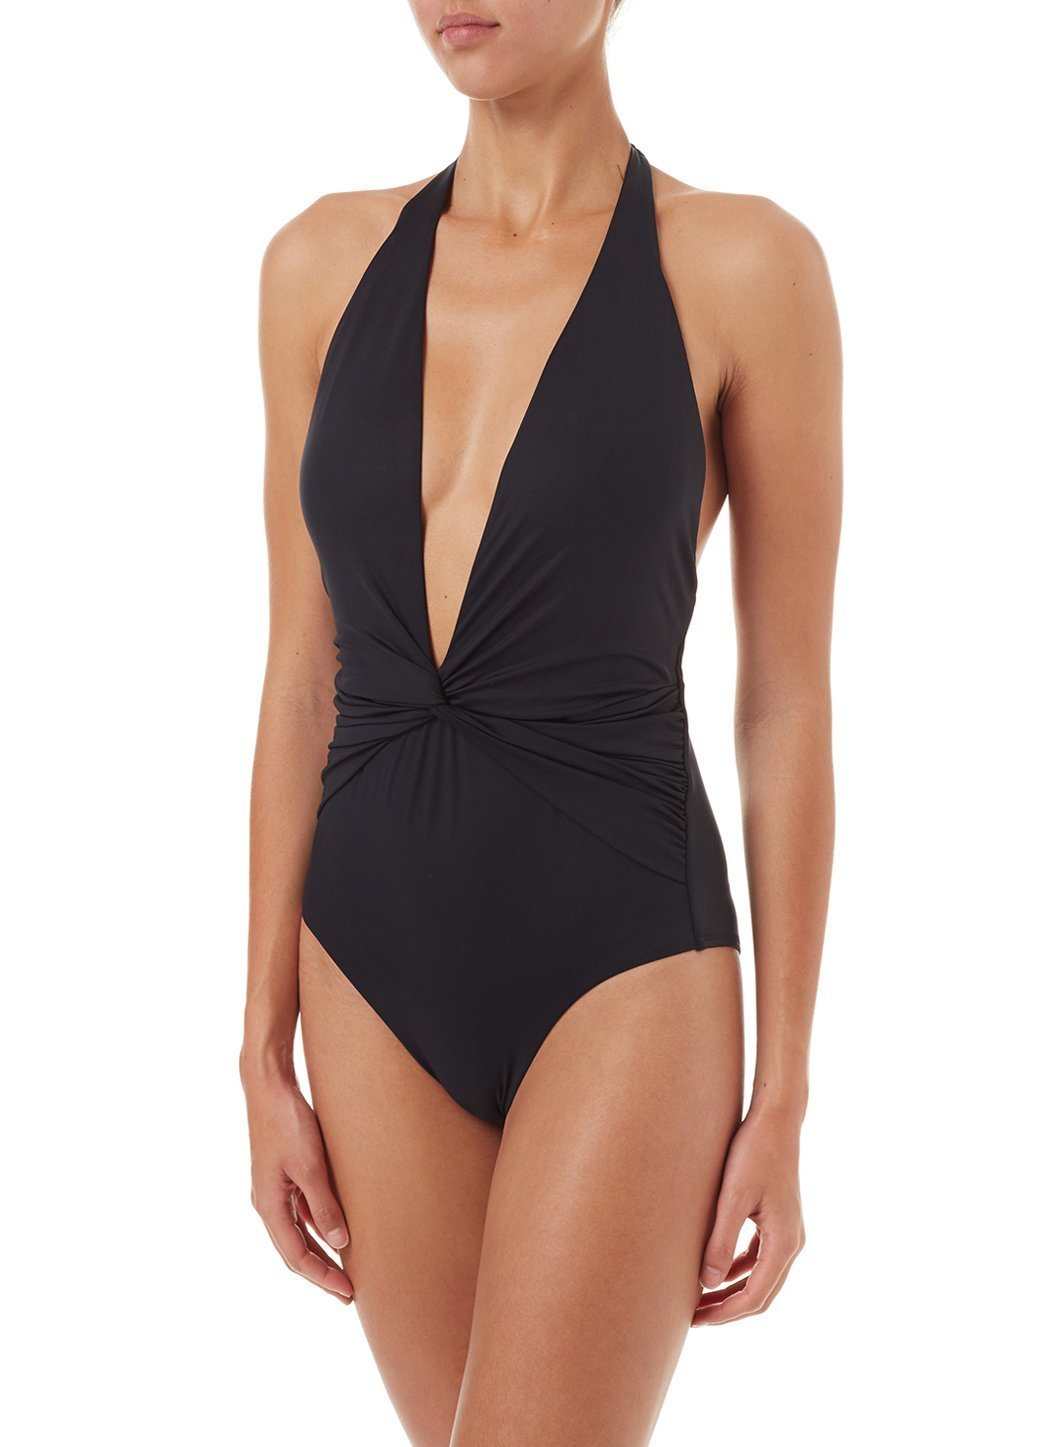 tahiti black halterneck plunge ruched onepiece swimsuit 2019 F